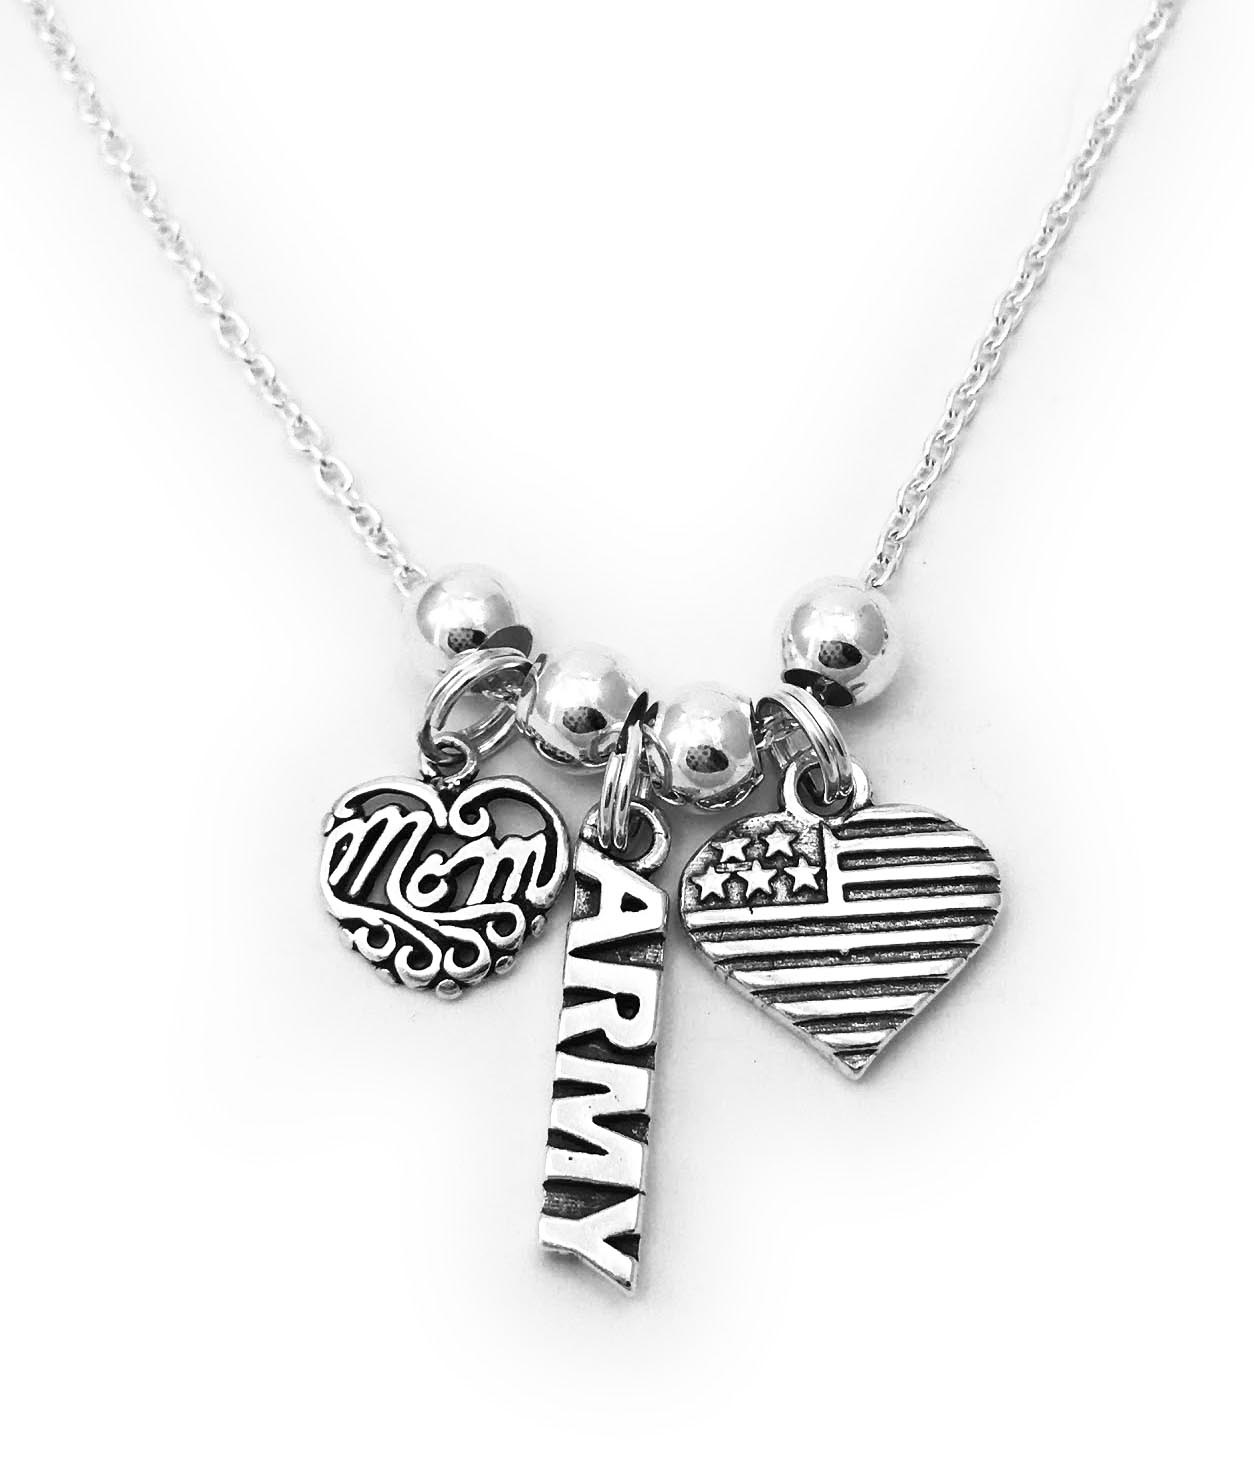 Sterling Silver Army Mom Necklace with MOM Charm, Heart Flag Charm